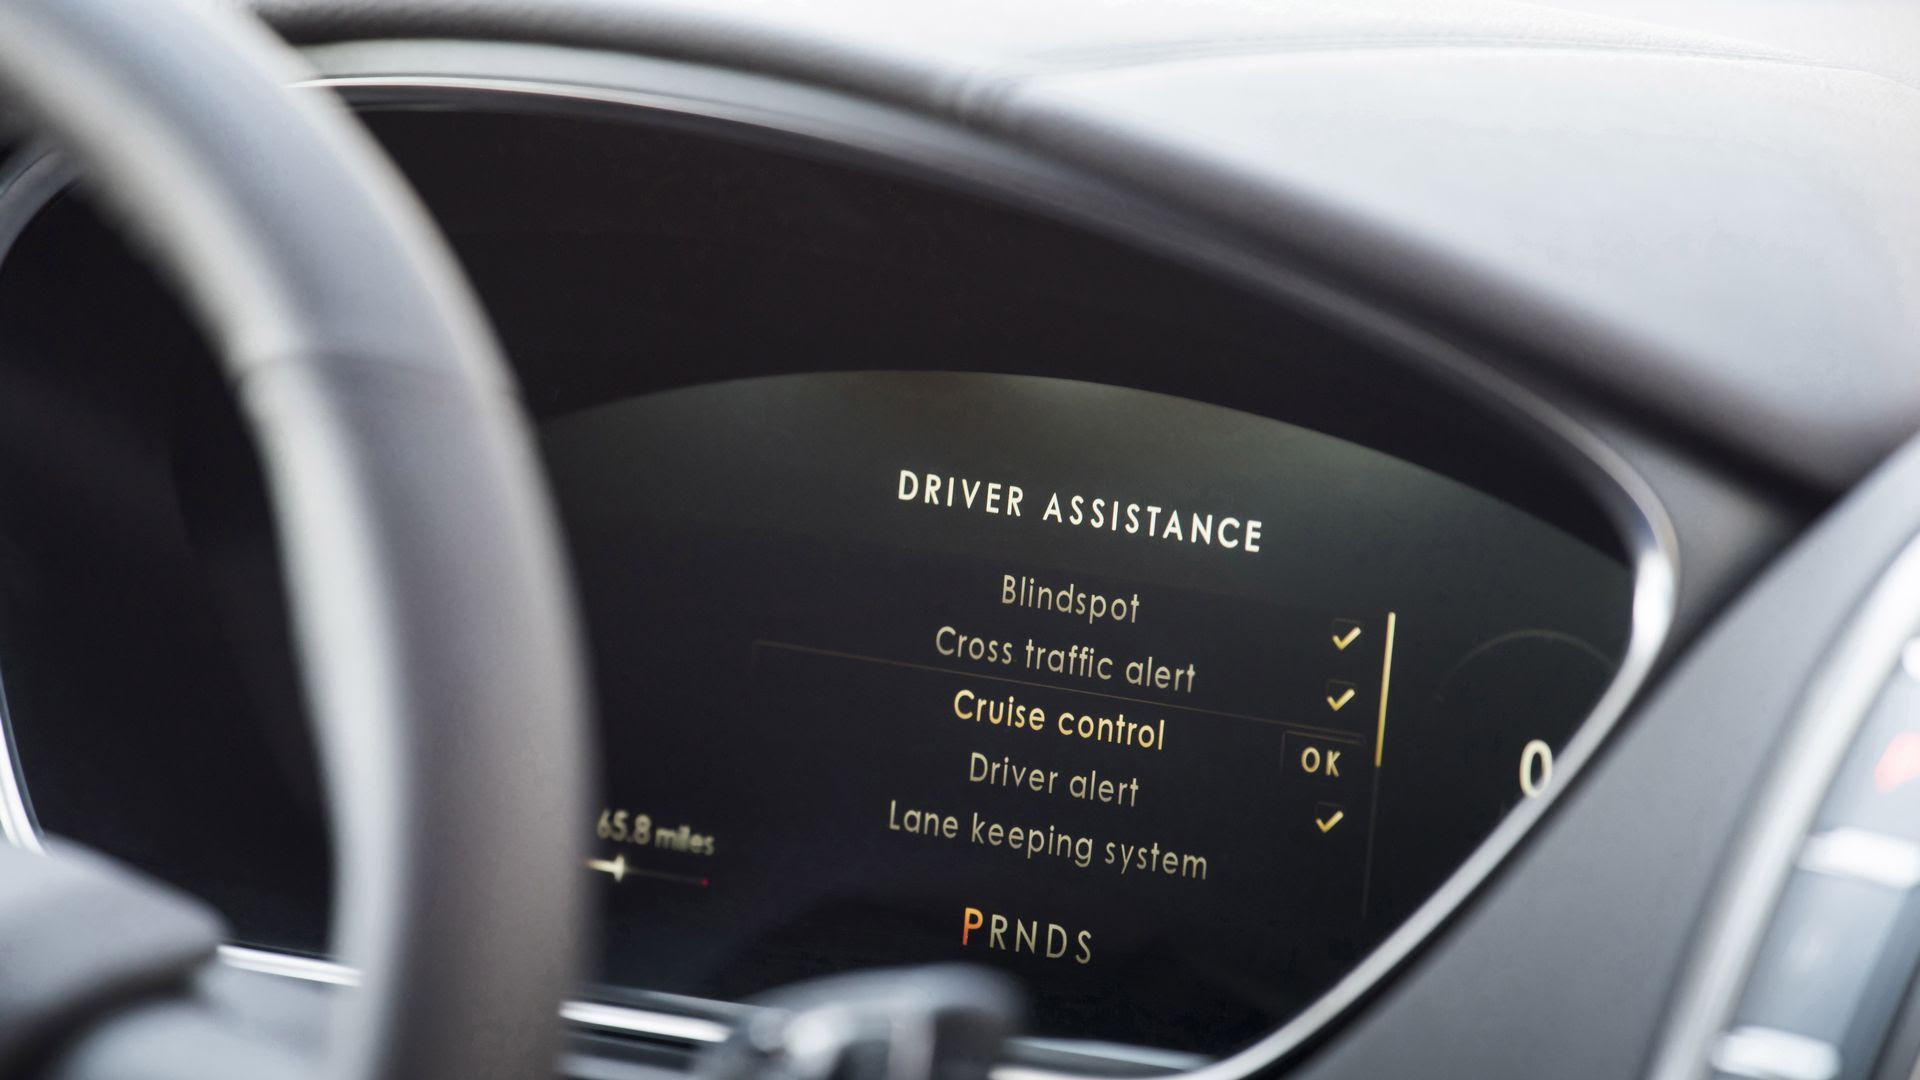 Driver assistance features in Lincoln's 2019 Nautilus